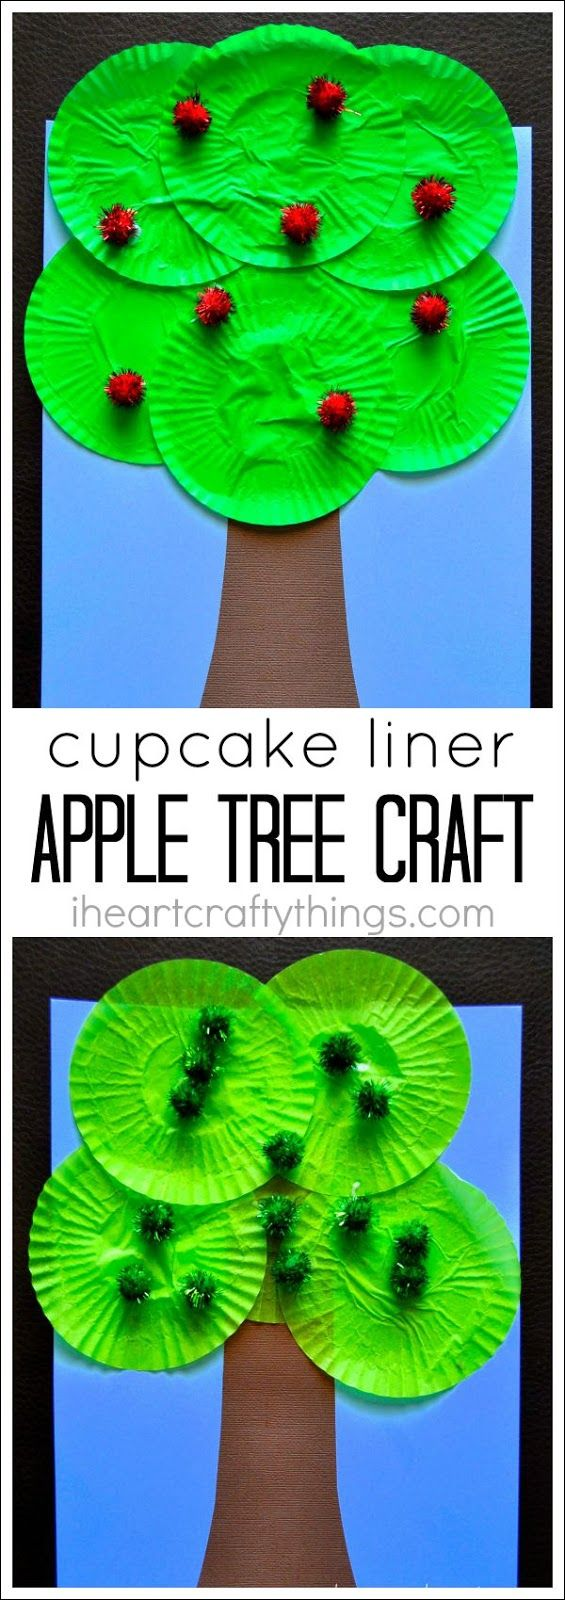 My toddler and I have been learning all about apples this week and we made this simple Cupcake Liner Apple Tree Craft to along with all the fun books we've been reading. They are so easy and fun to make! HOW TO MAKE A CUPCAKE LINER APPLE TREE CRAFT Supplies you will need: light blue …